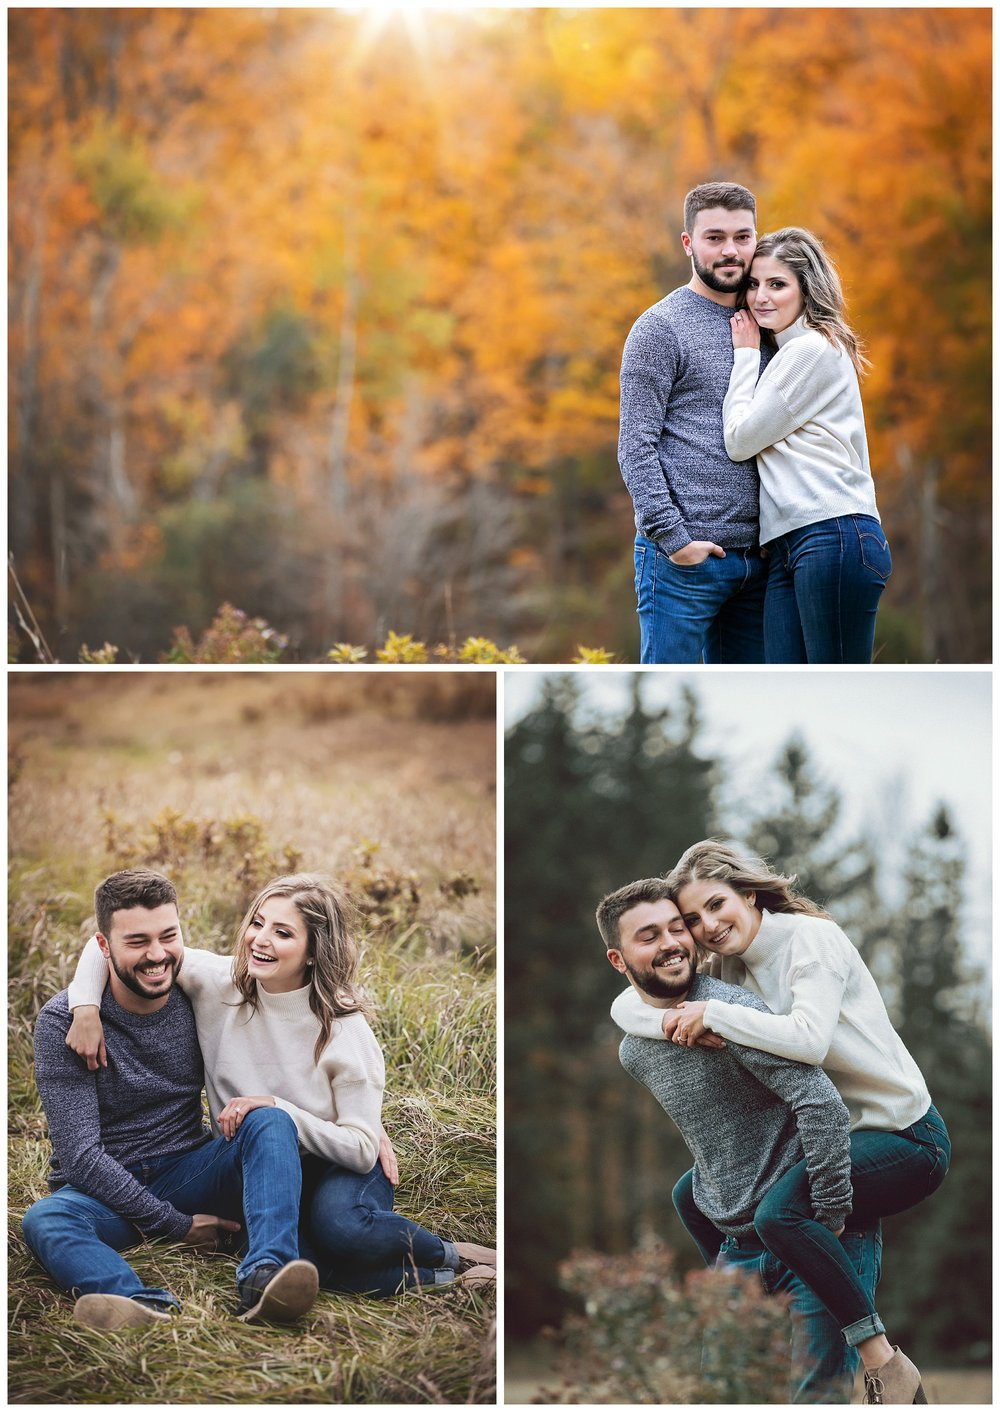 VanDaele-Russell-Photography-Scotsdale-Farm-Engagement_0255.jpg